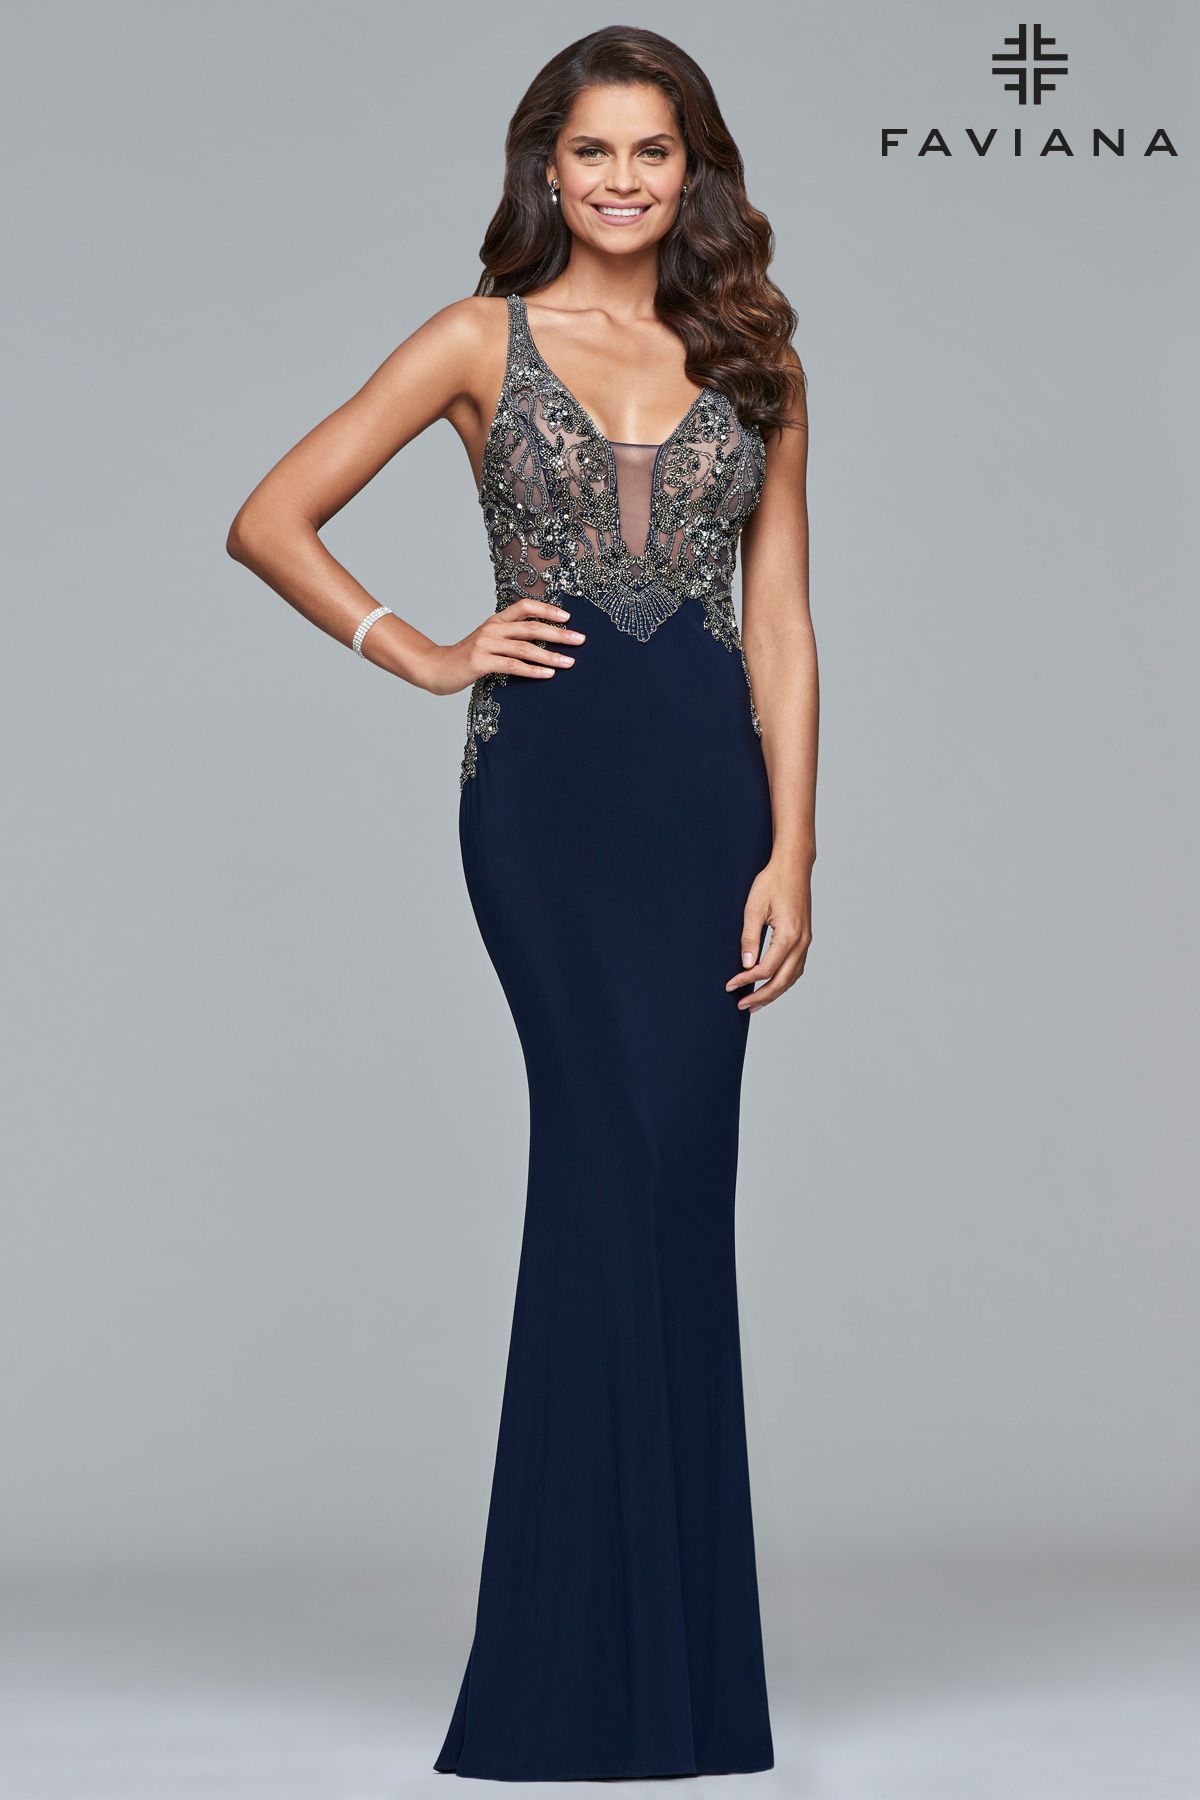 S all faviana dresses pinterest homecoming bodice and prom